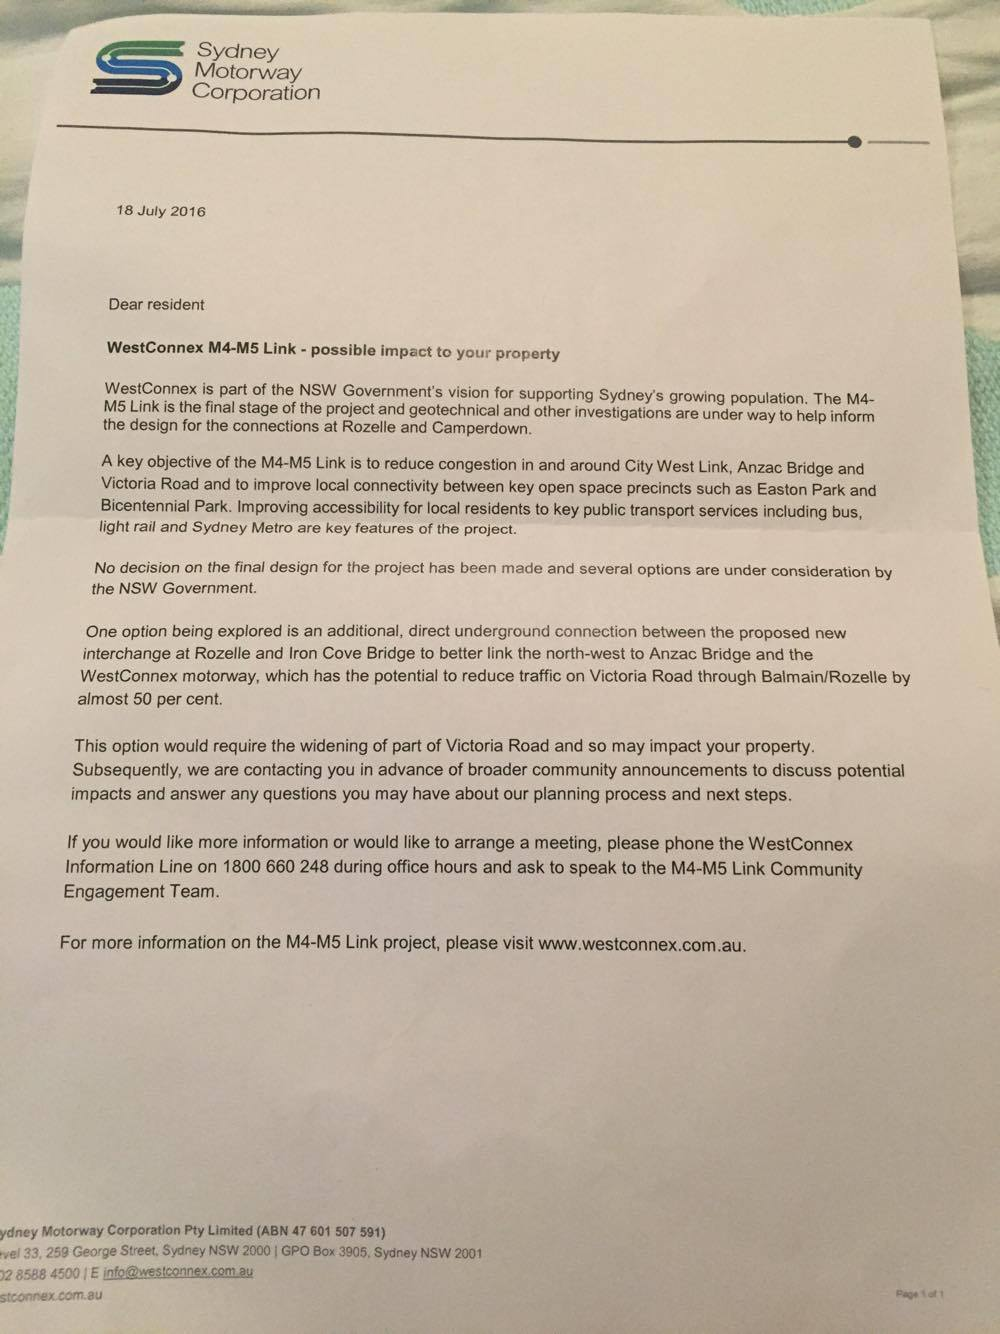 Rozelle letters distributed on 18 July 2016